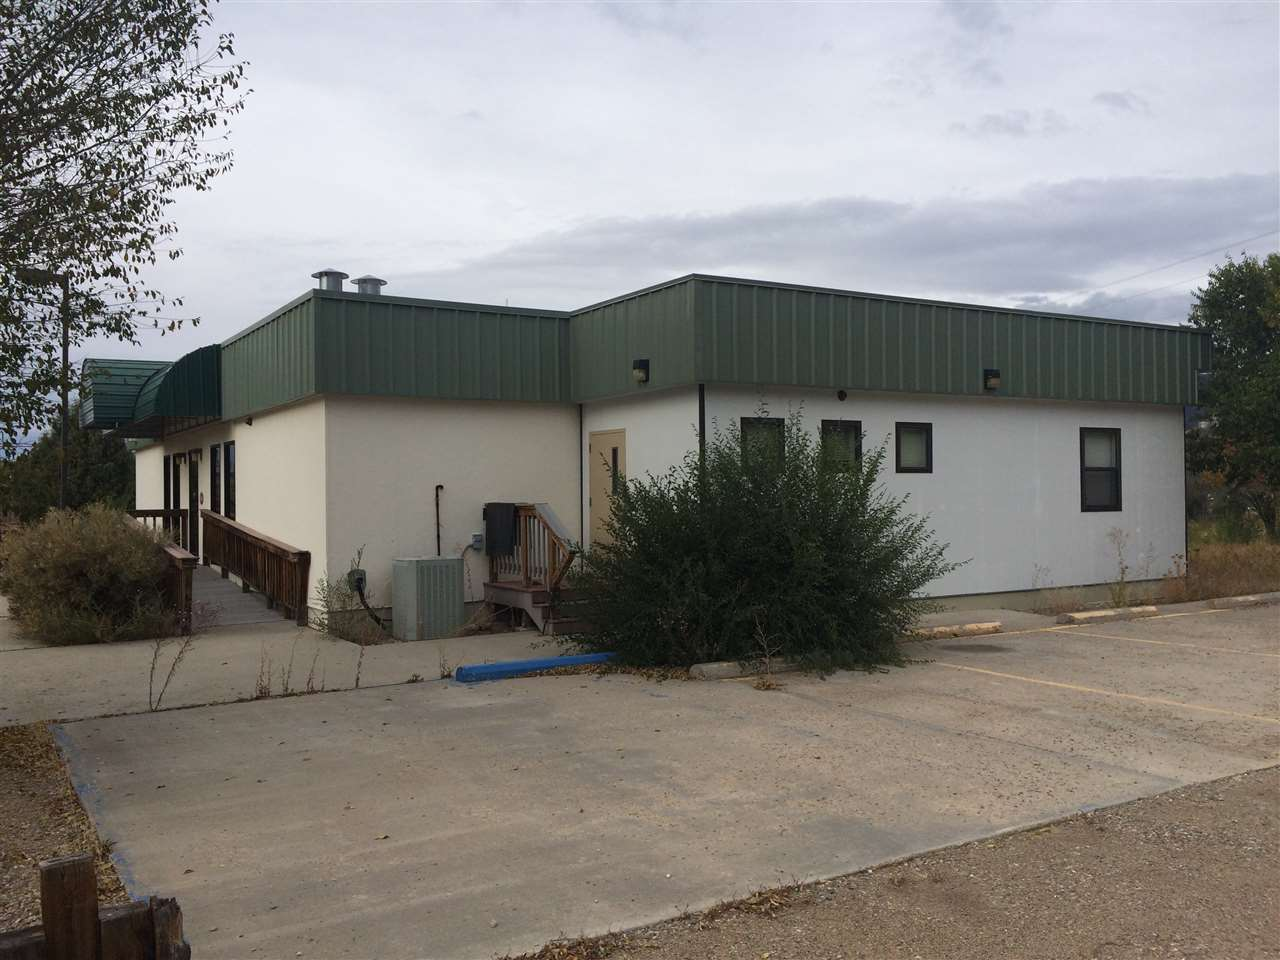 24 State Road 73, Penasco, NM 87553